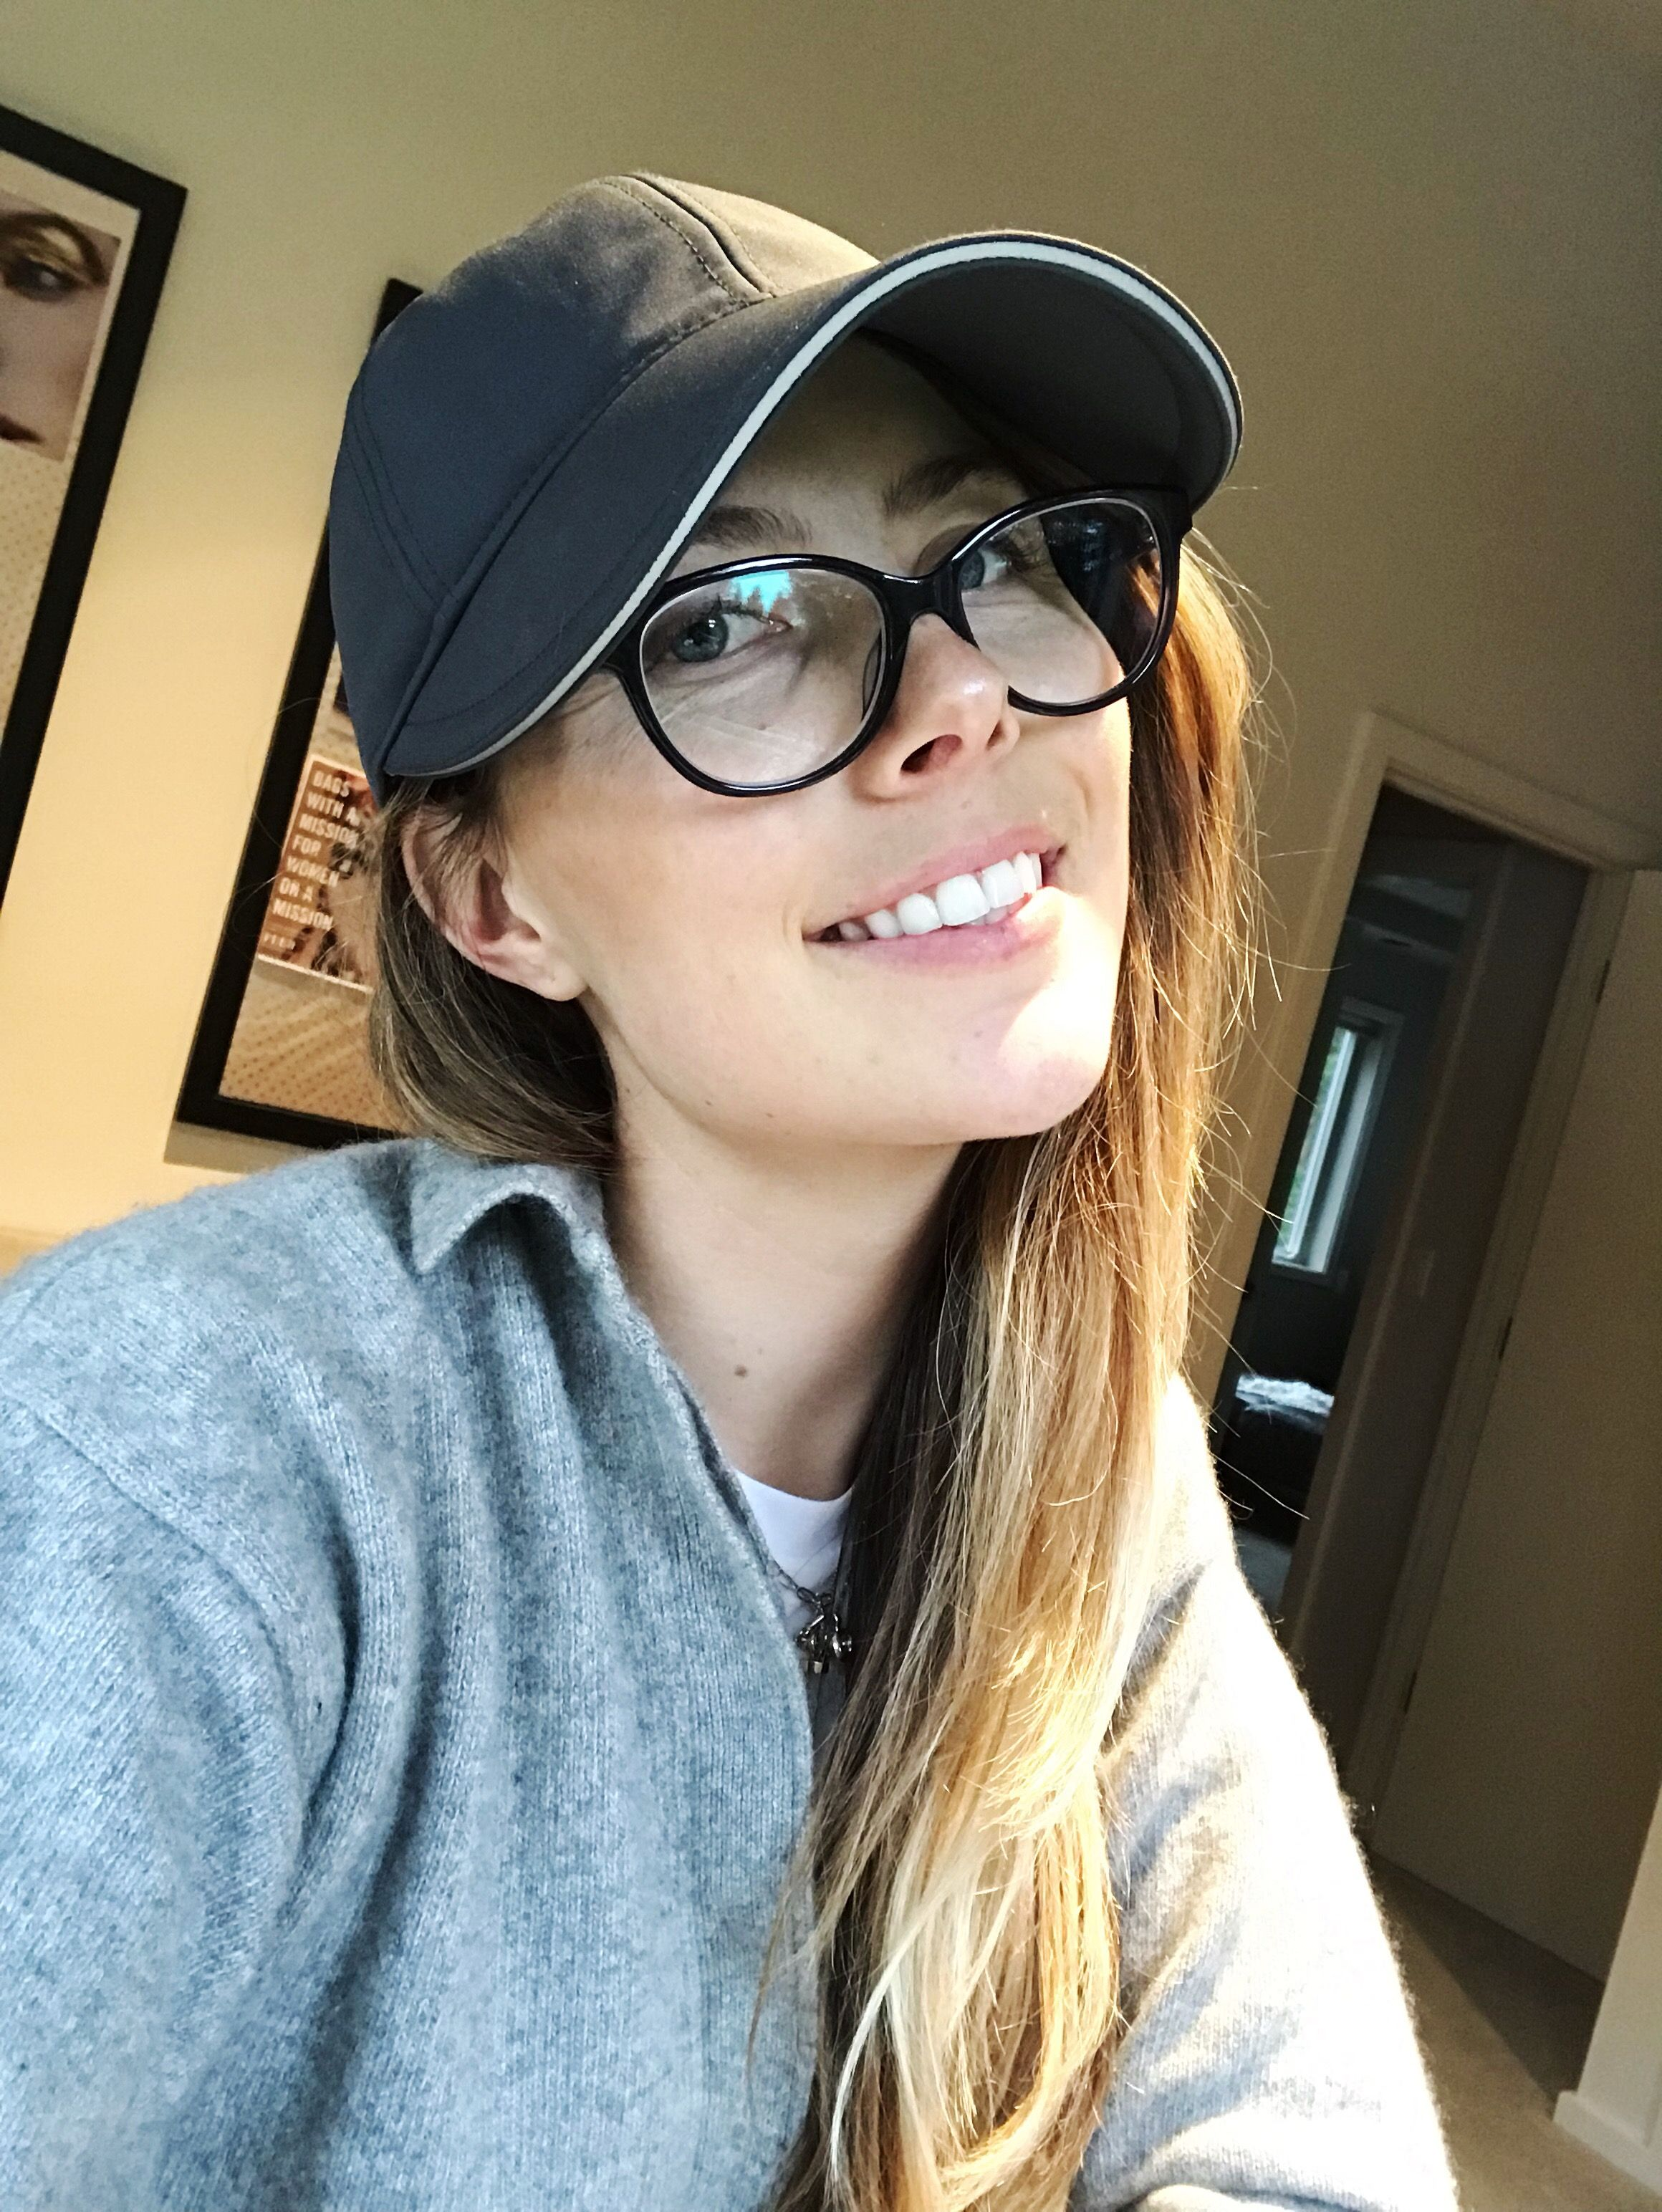 Athletic Hat For Women That Fits Over Glasses And Has Ponytail Height Options Hats For Women Athletic Hat Athletic Fashion